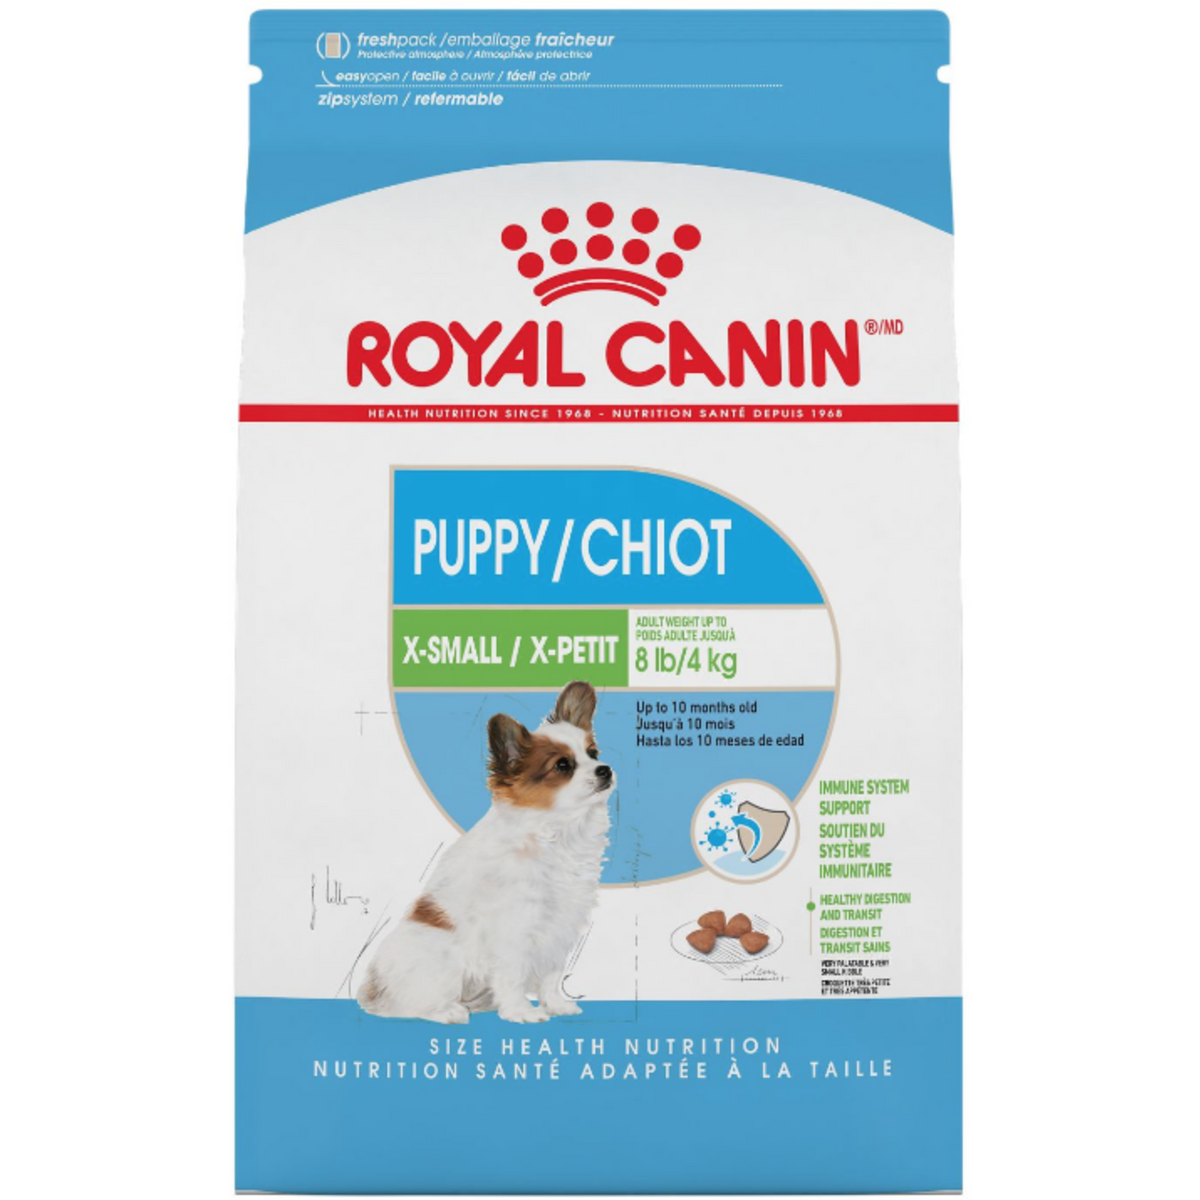 Royal Canin X-SMALL Puppy Dog Food